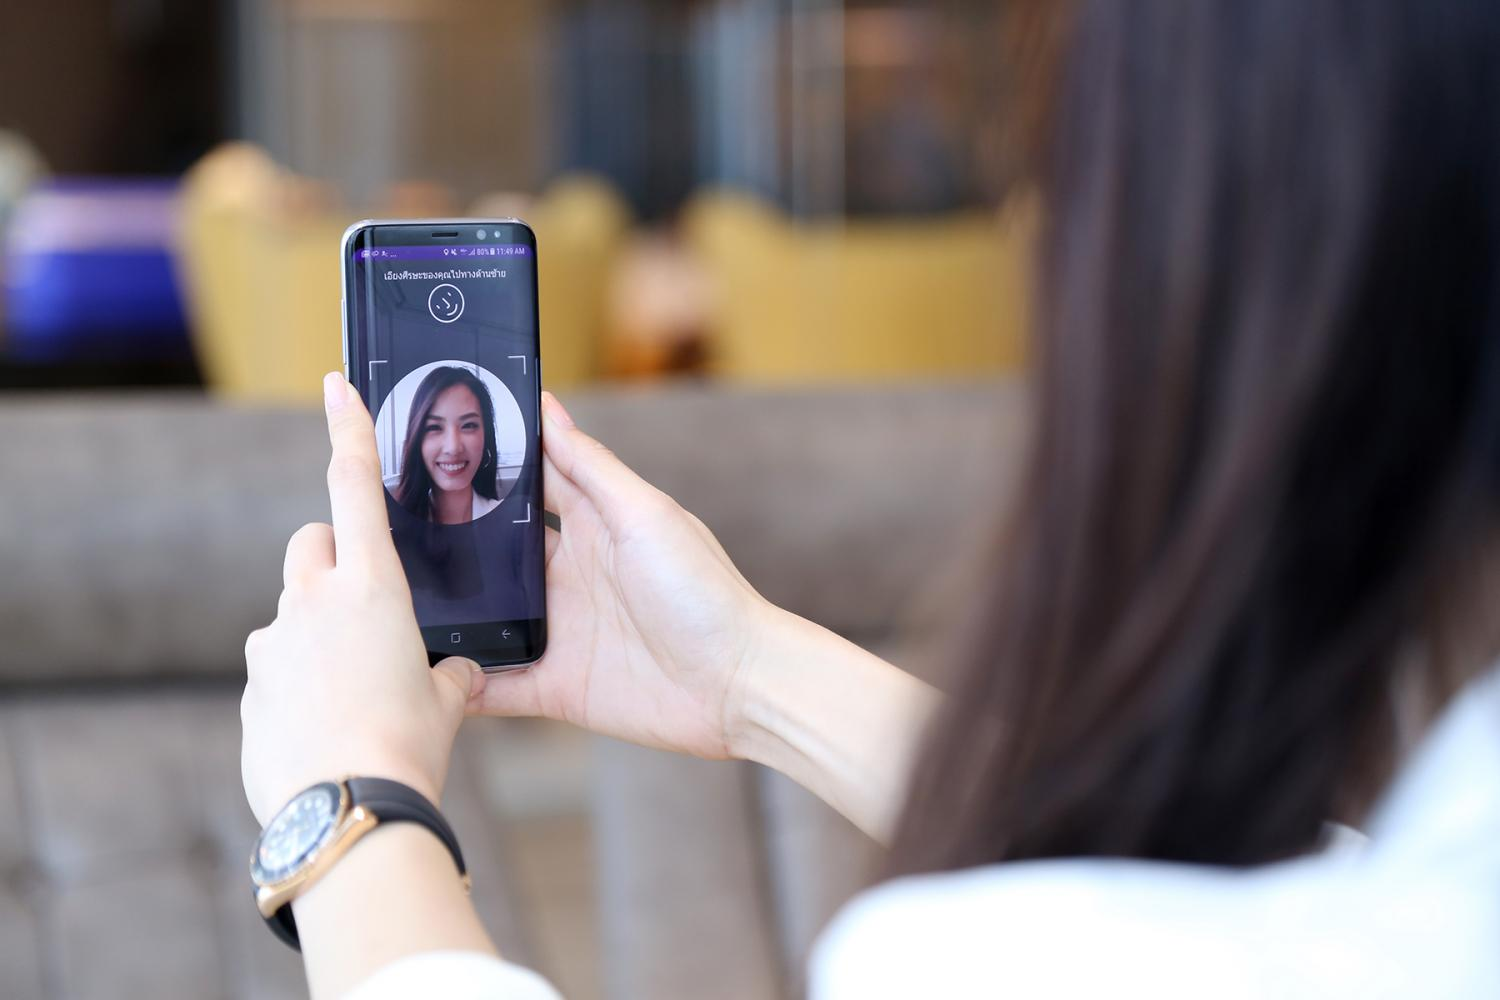 Siam Commercial Bank upgraded the SCB EASY mobile app features to include electronic know-your-customer technology that allows customers to open new bank accounts without the need for human face-to-face interaction.